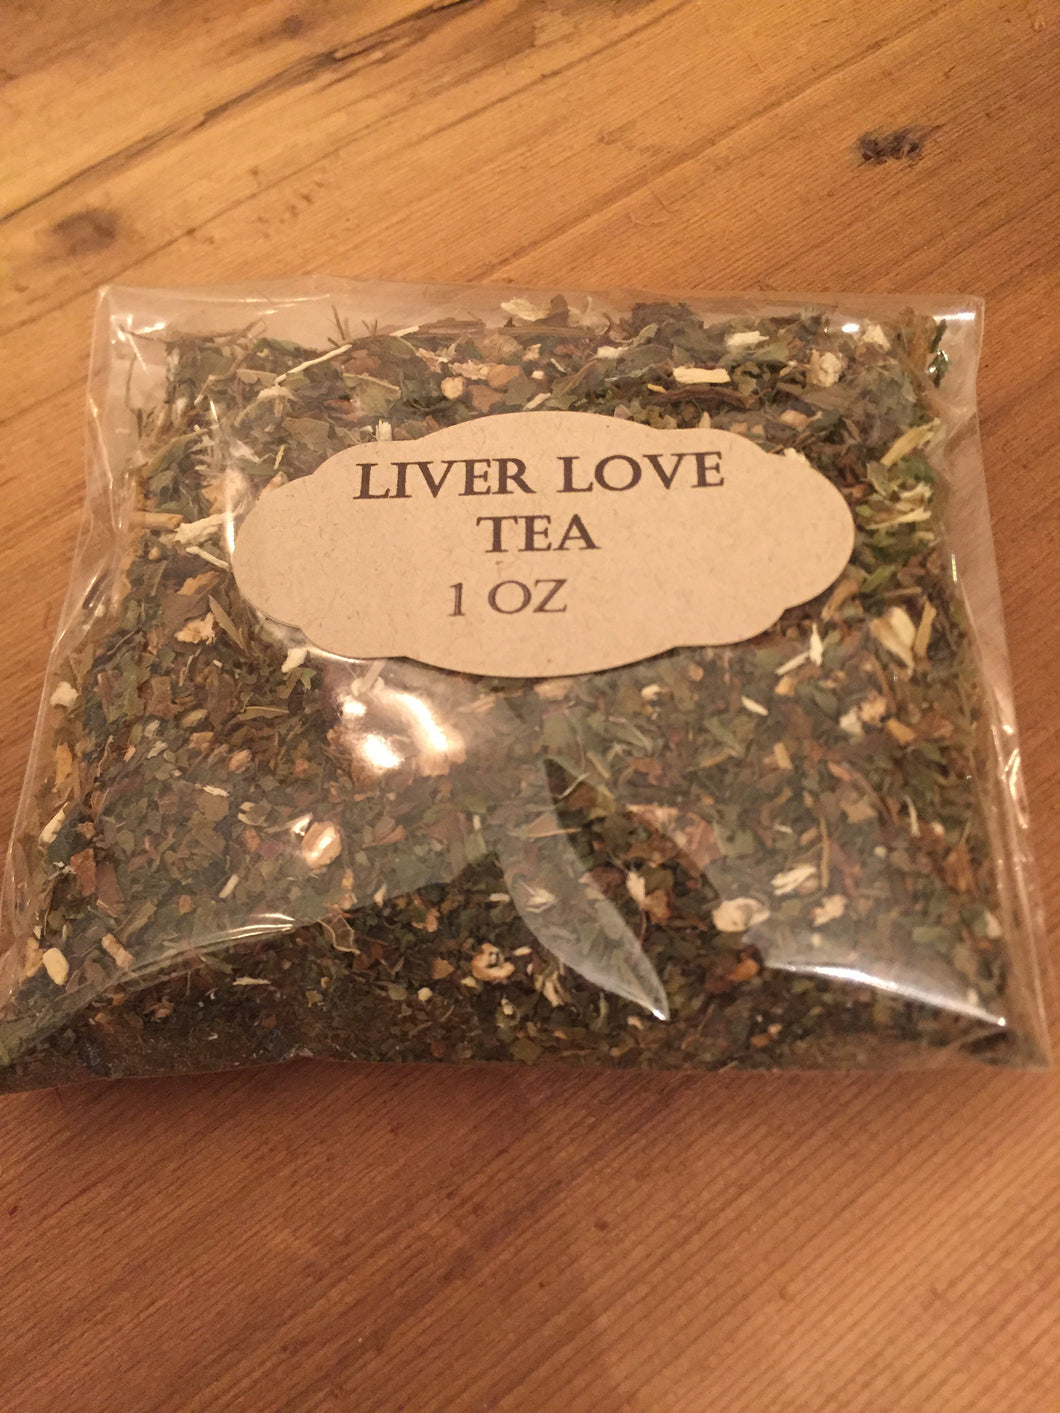 Liver Love Tea 1oz